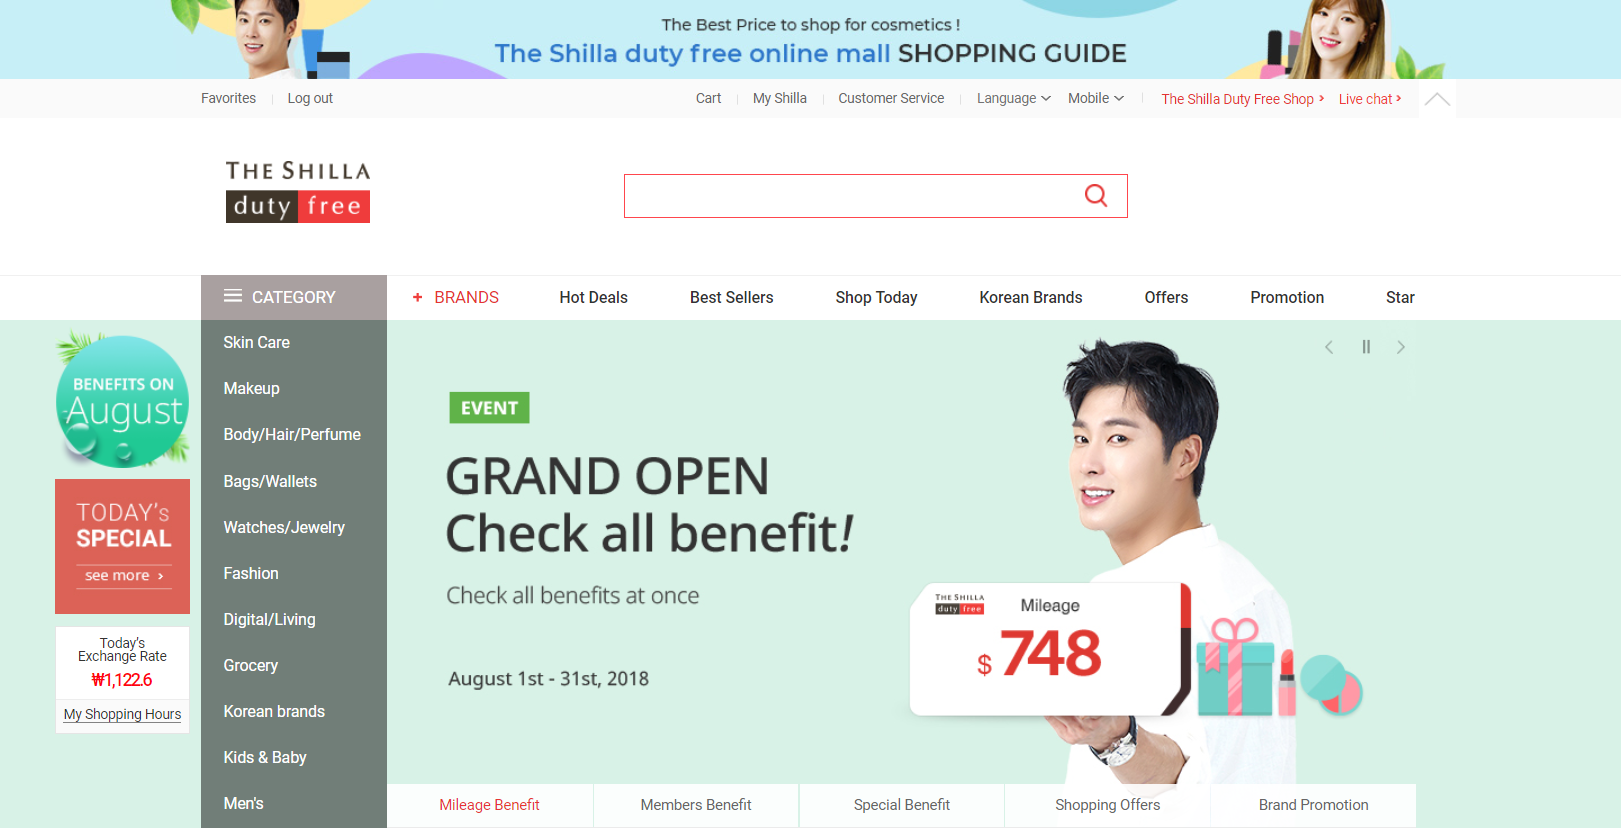 The Shilla Duty Free Online Mall